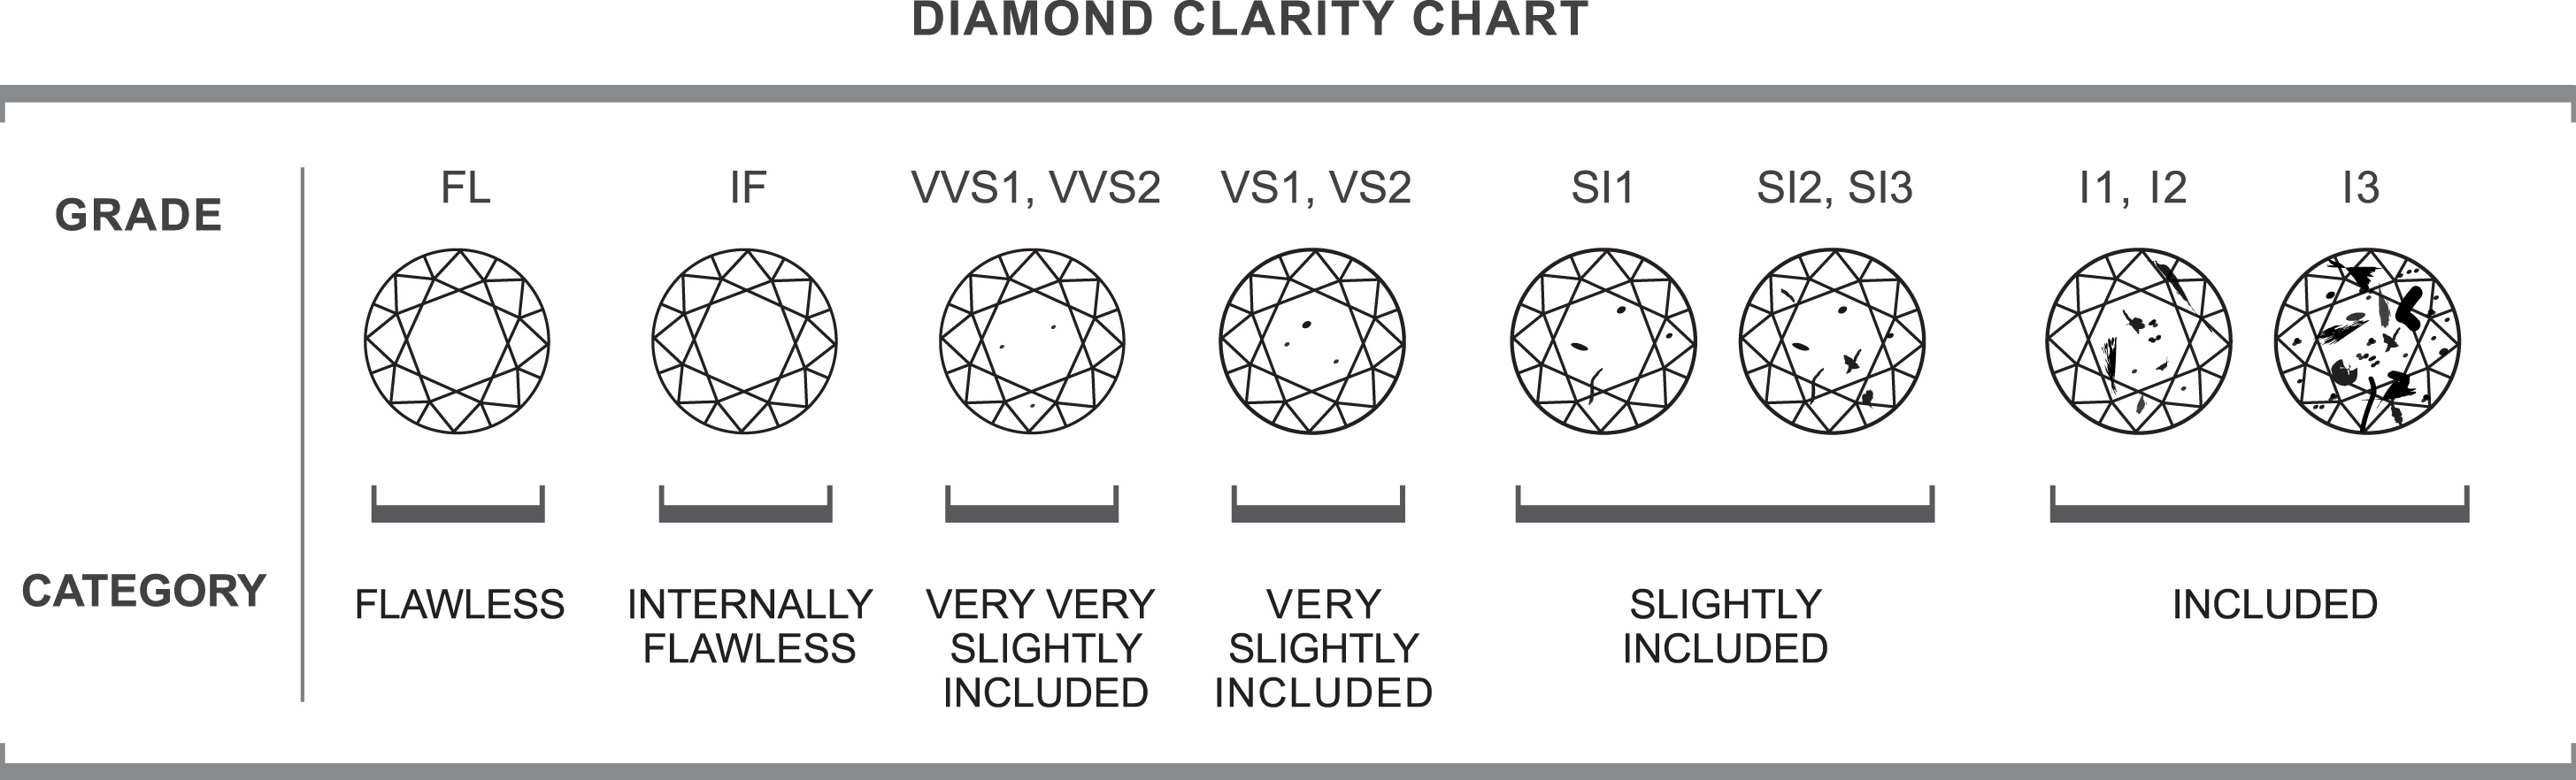 weight carat color diamond grading